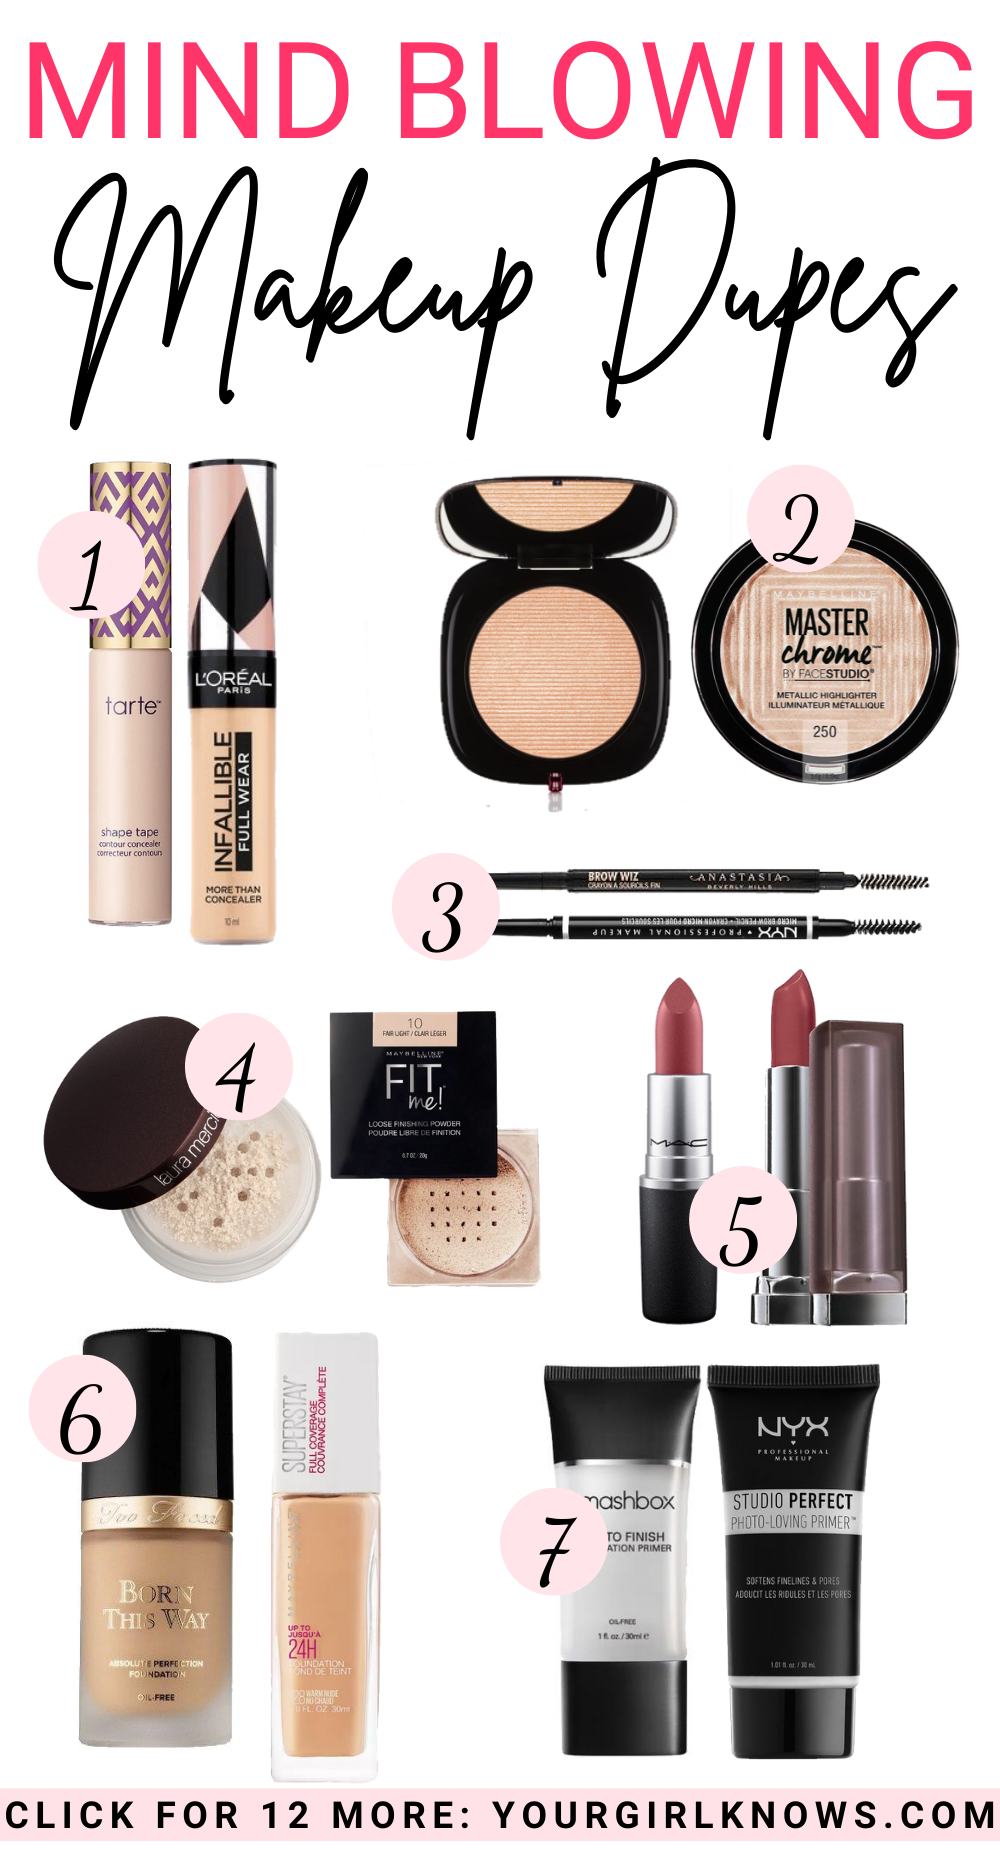 The Best Drugstore Makeup Dupes Of High End Makeup Yourgirlknows Com In 2020 Drugstore Makeup Dupes Best Makeup Dupes Makeup Dupes